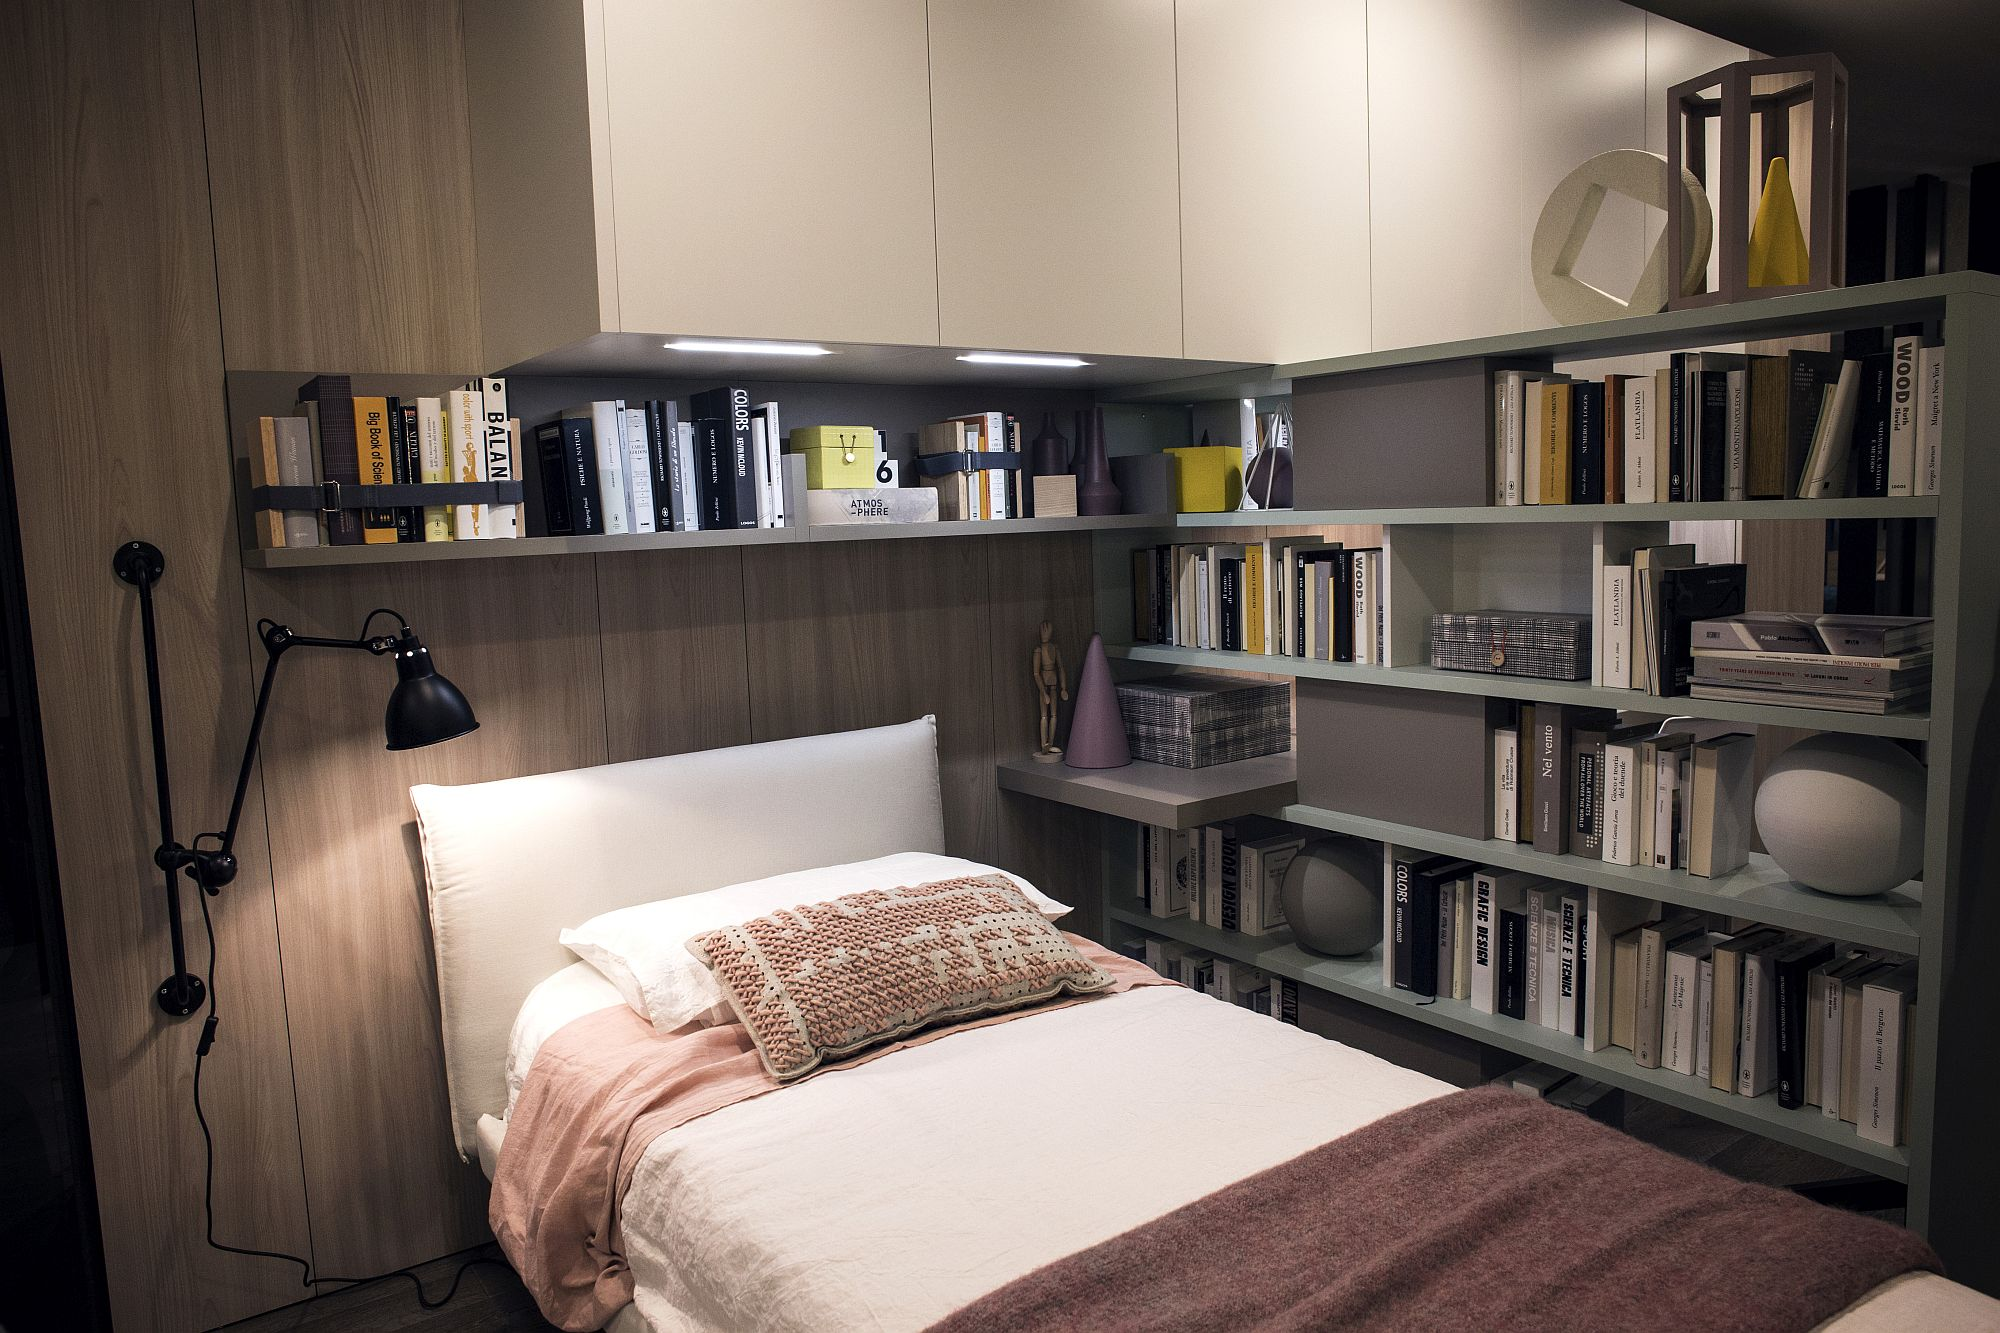 Series of open shelves around the bed helps stack all those books and toys